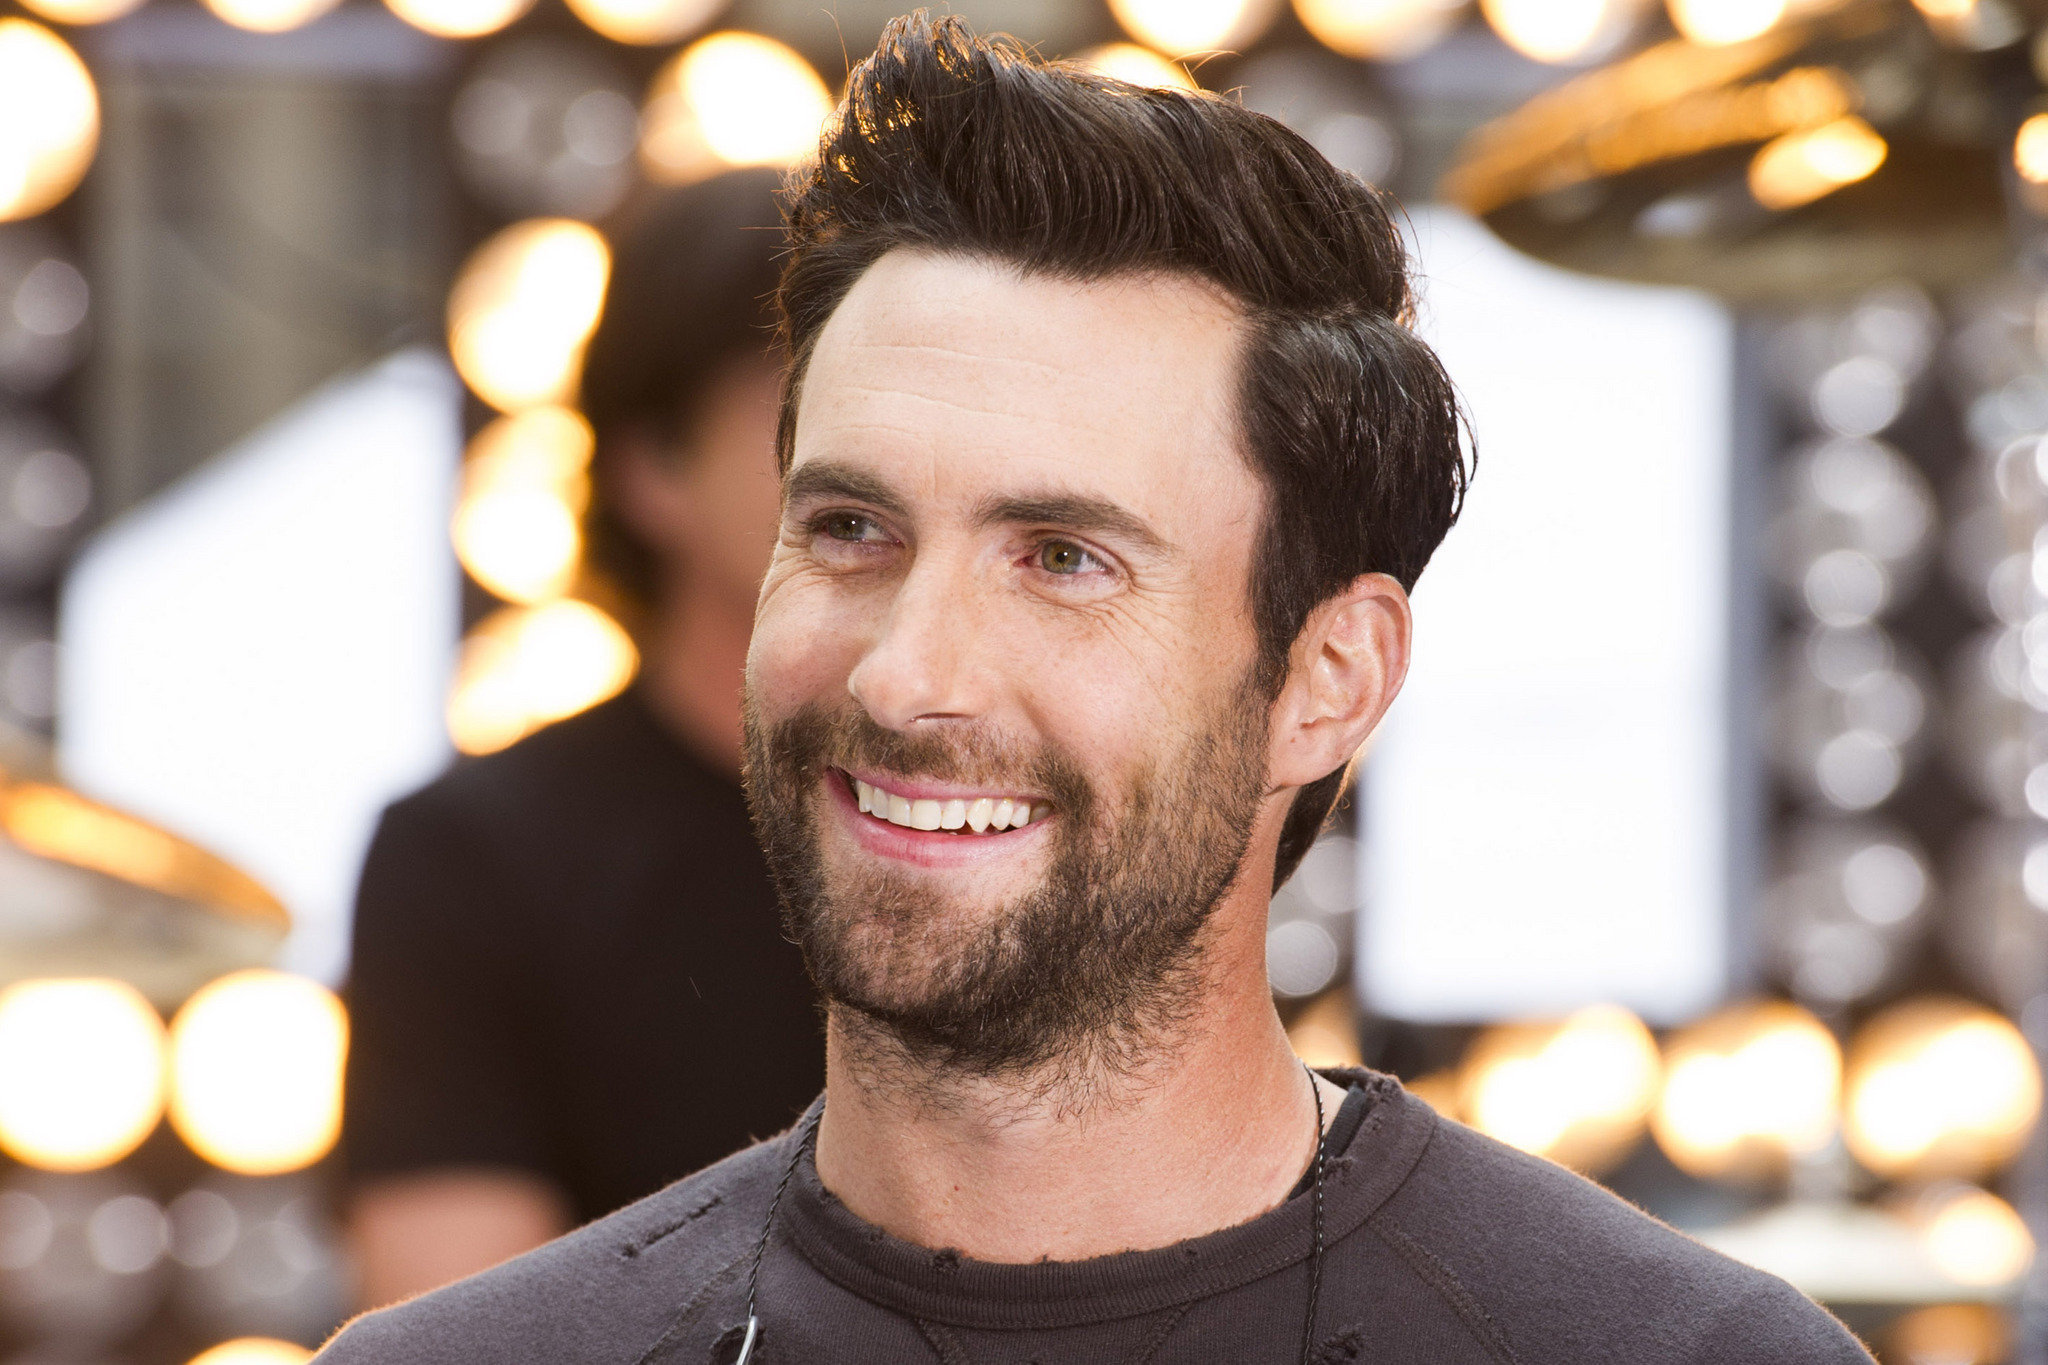 download adam levine pictures 26645 2048x1365 px high definition